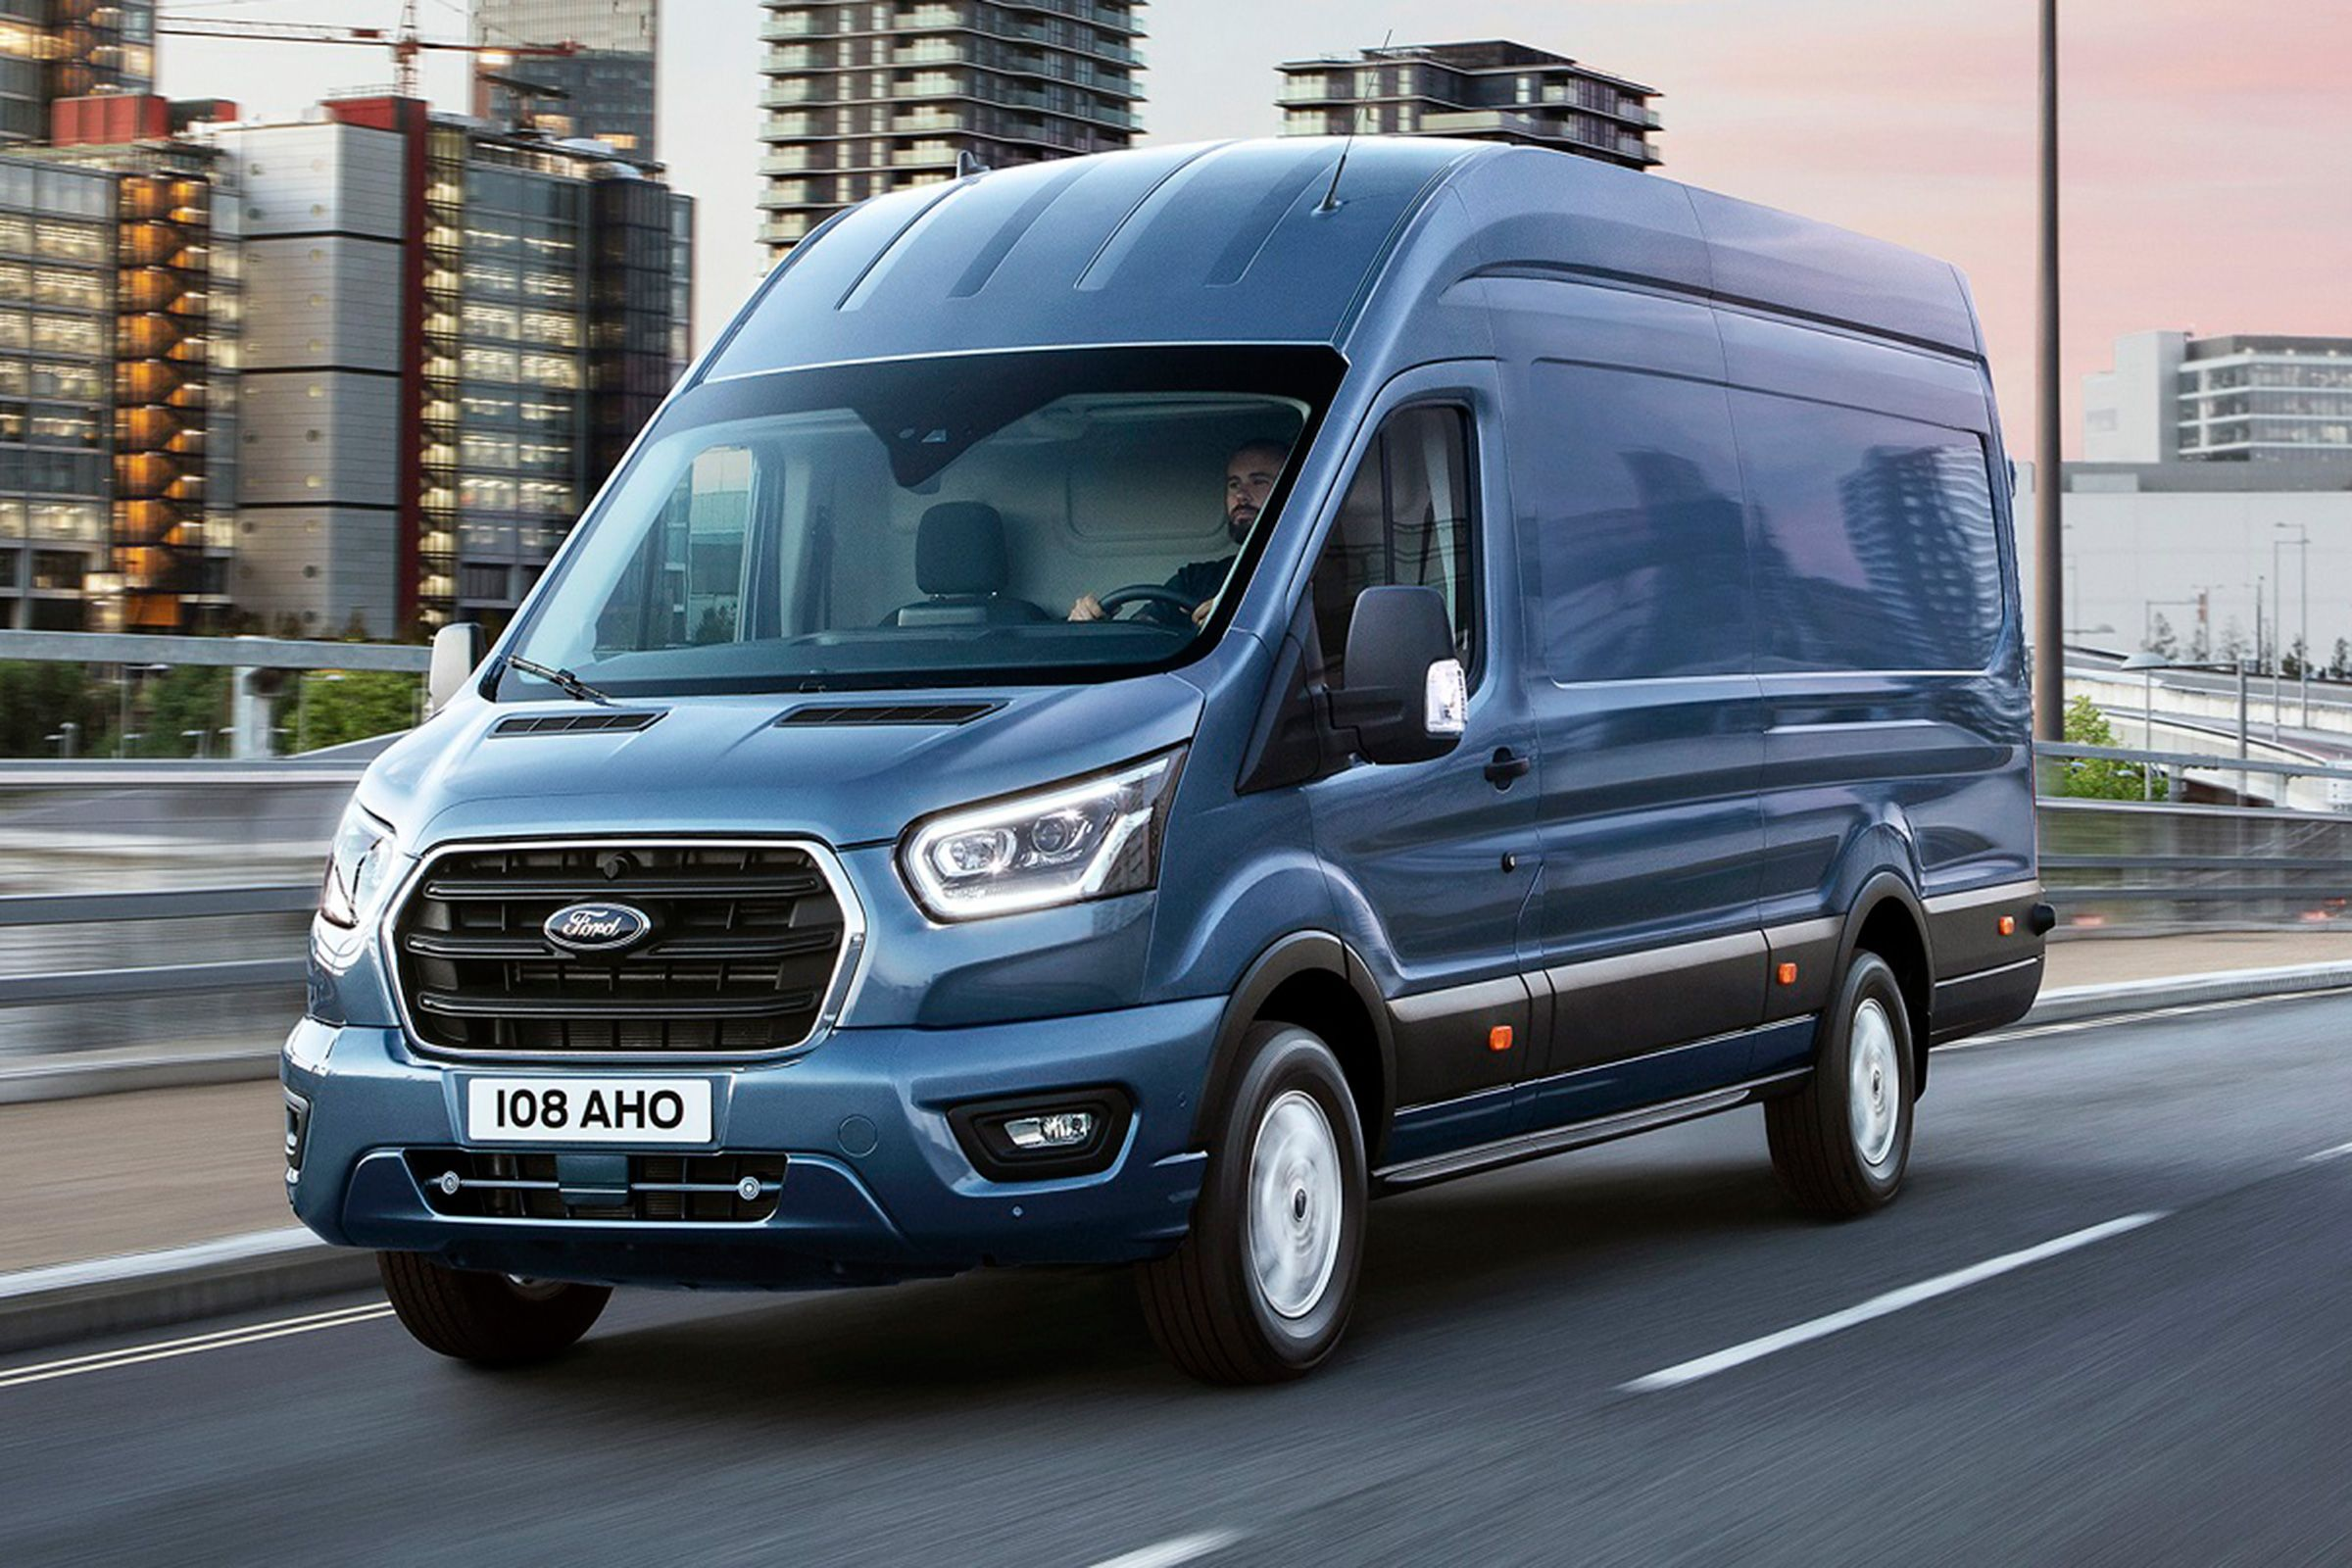 Ford Transit 4x4 Matte Blue Google Search Ford Transit Ford